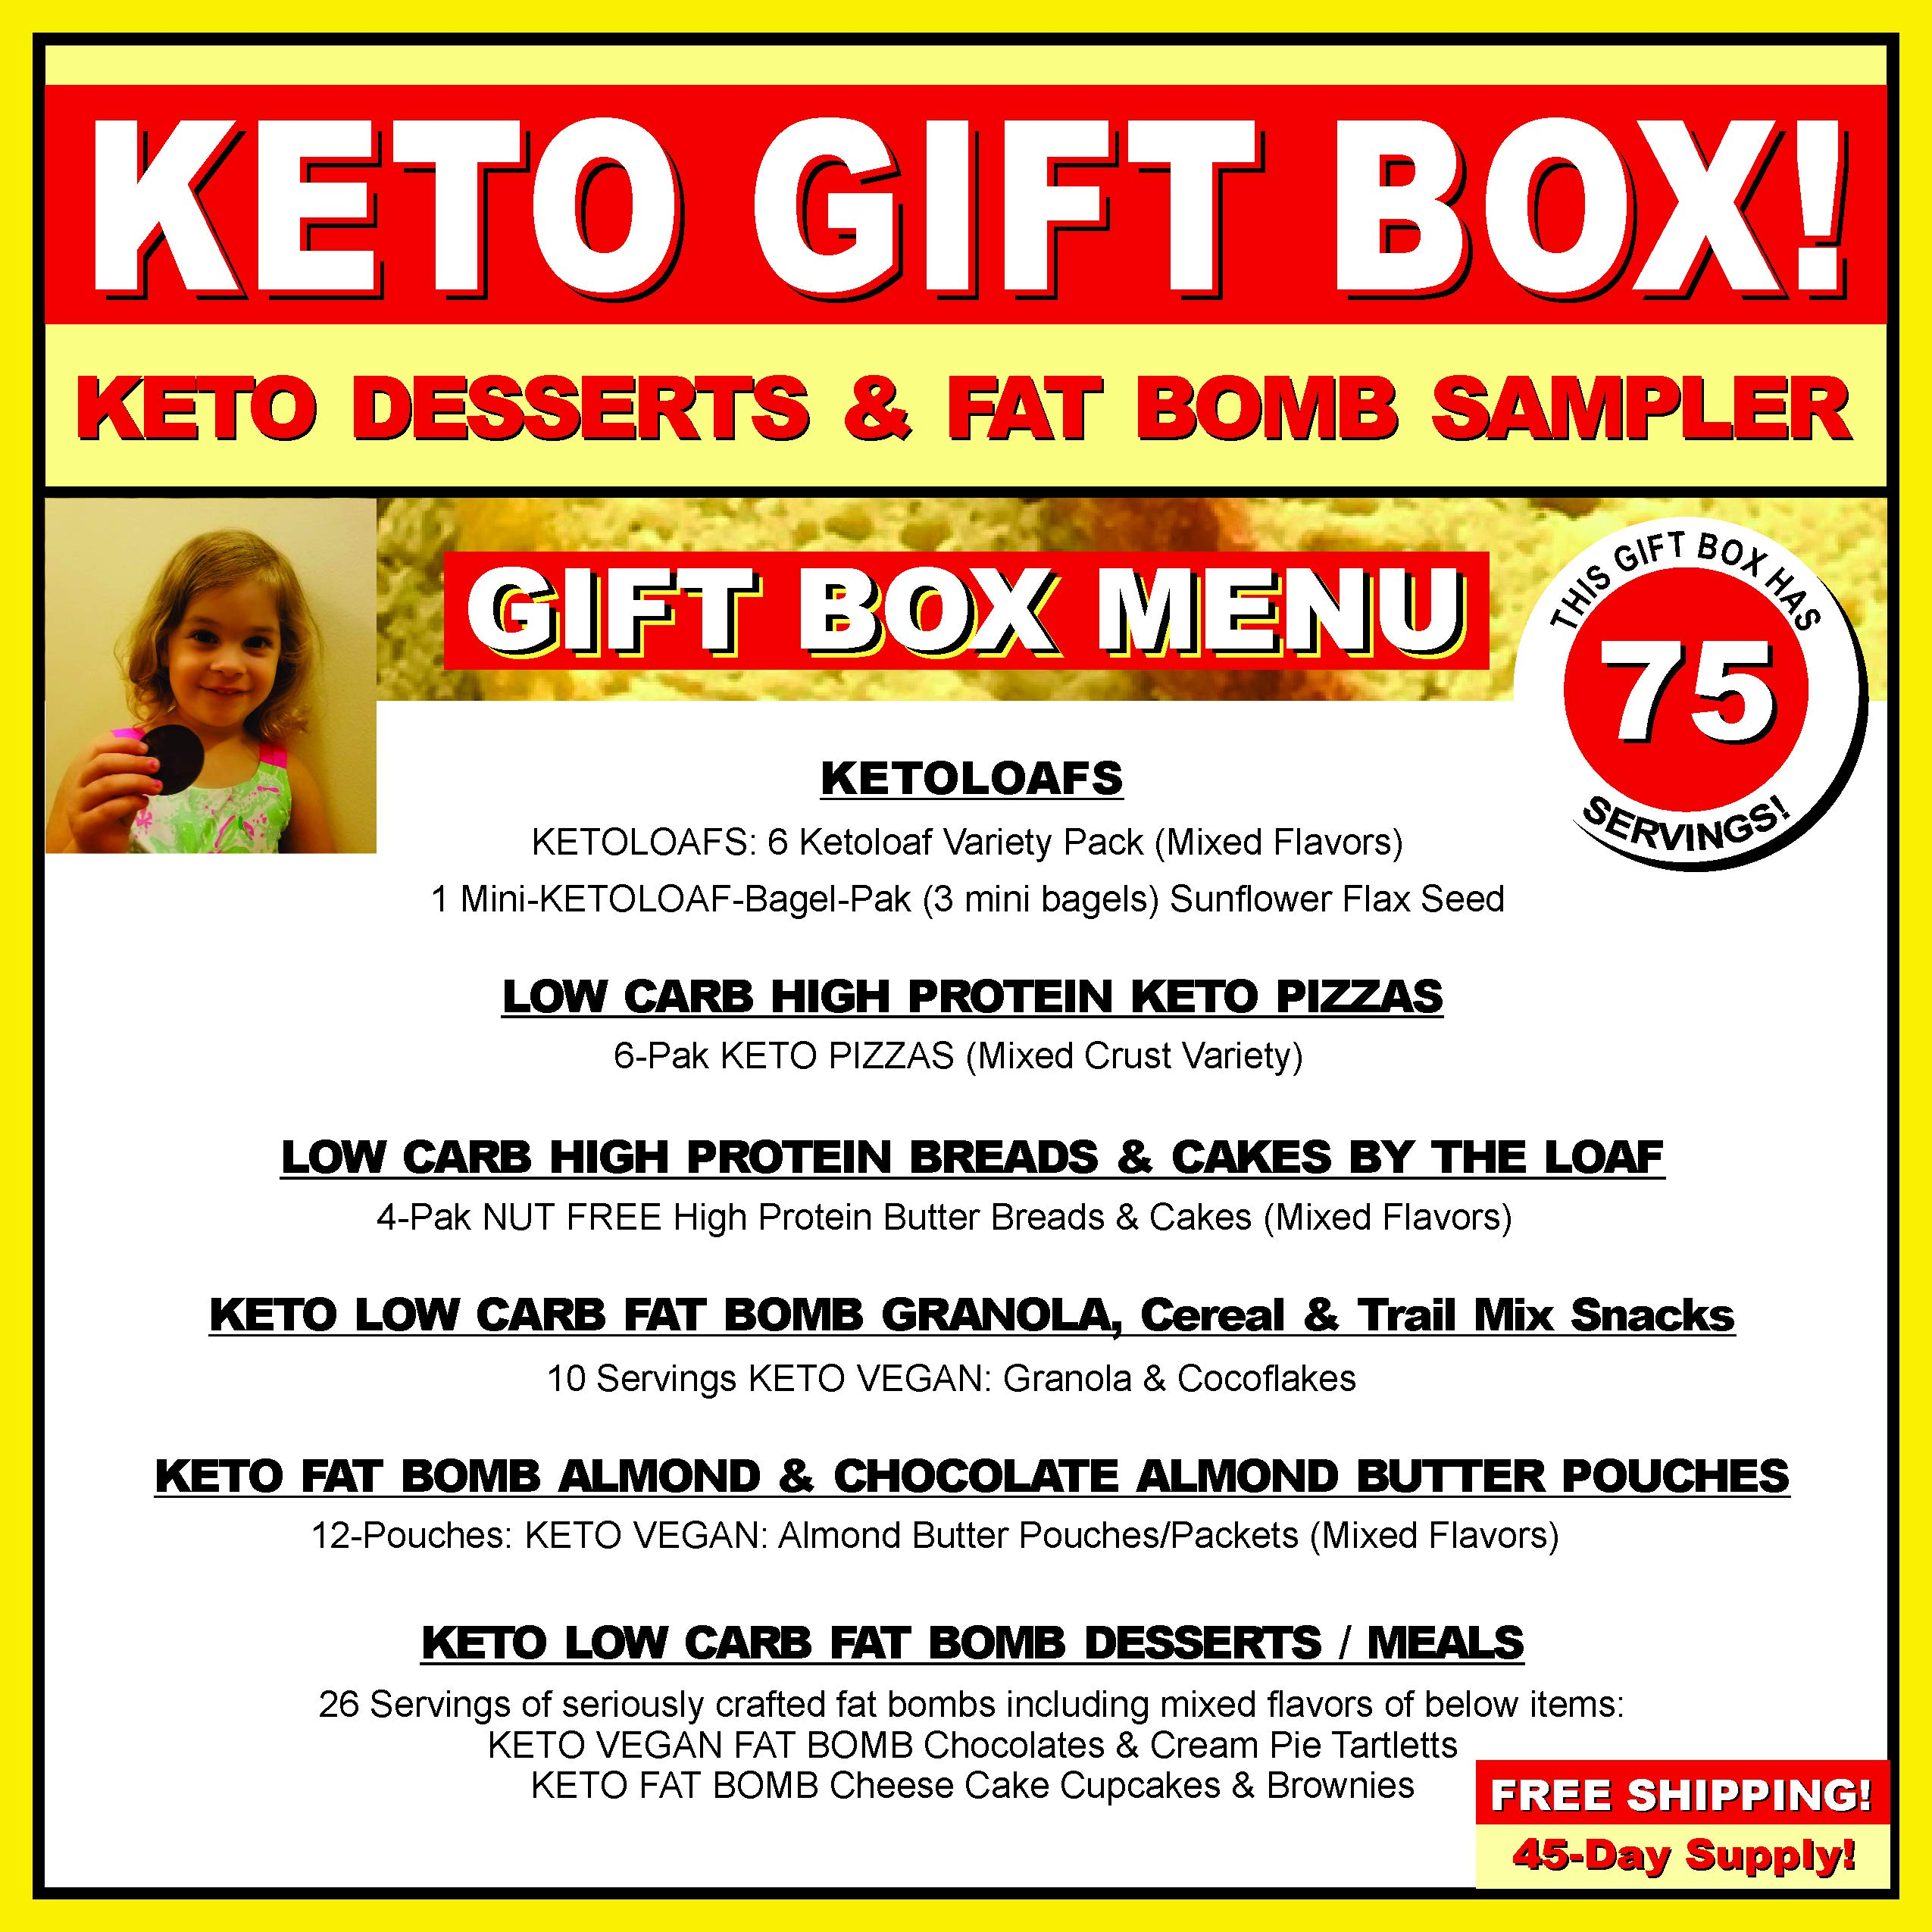 KETO BAKERY LOW CARB PIZZA & FAT BOMB HOLIDAY GIFT BOX ~ 75 Servings! GLUTEN FREE! NO SUGARS ADDED! HIGH FAT LOW CARB DESSERT MEALS, FAT BOMBS by KETO TO GO (Image #2)